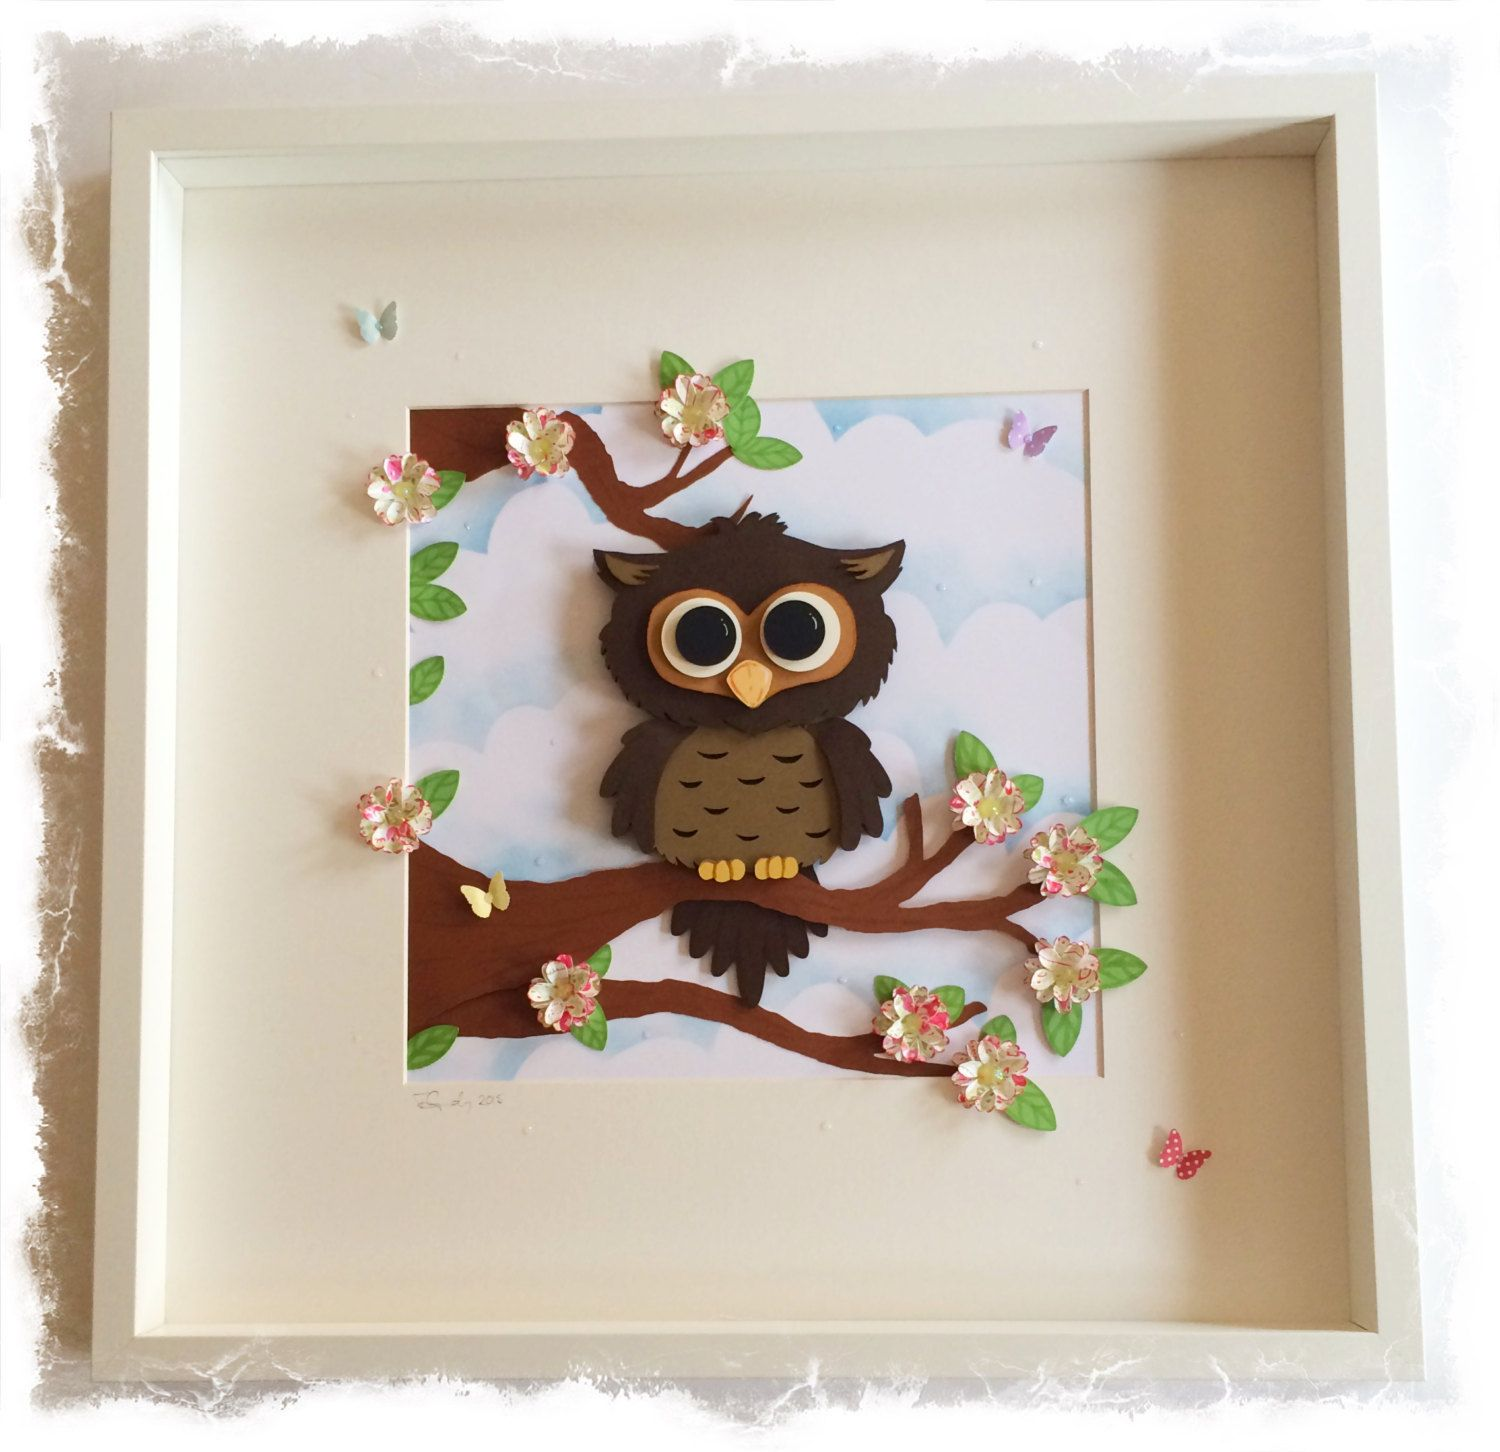 Owl Collage / 3D Owl Picture - Large Shadow box frame by ...